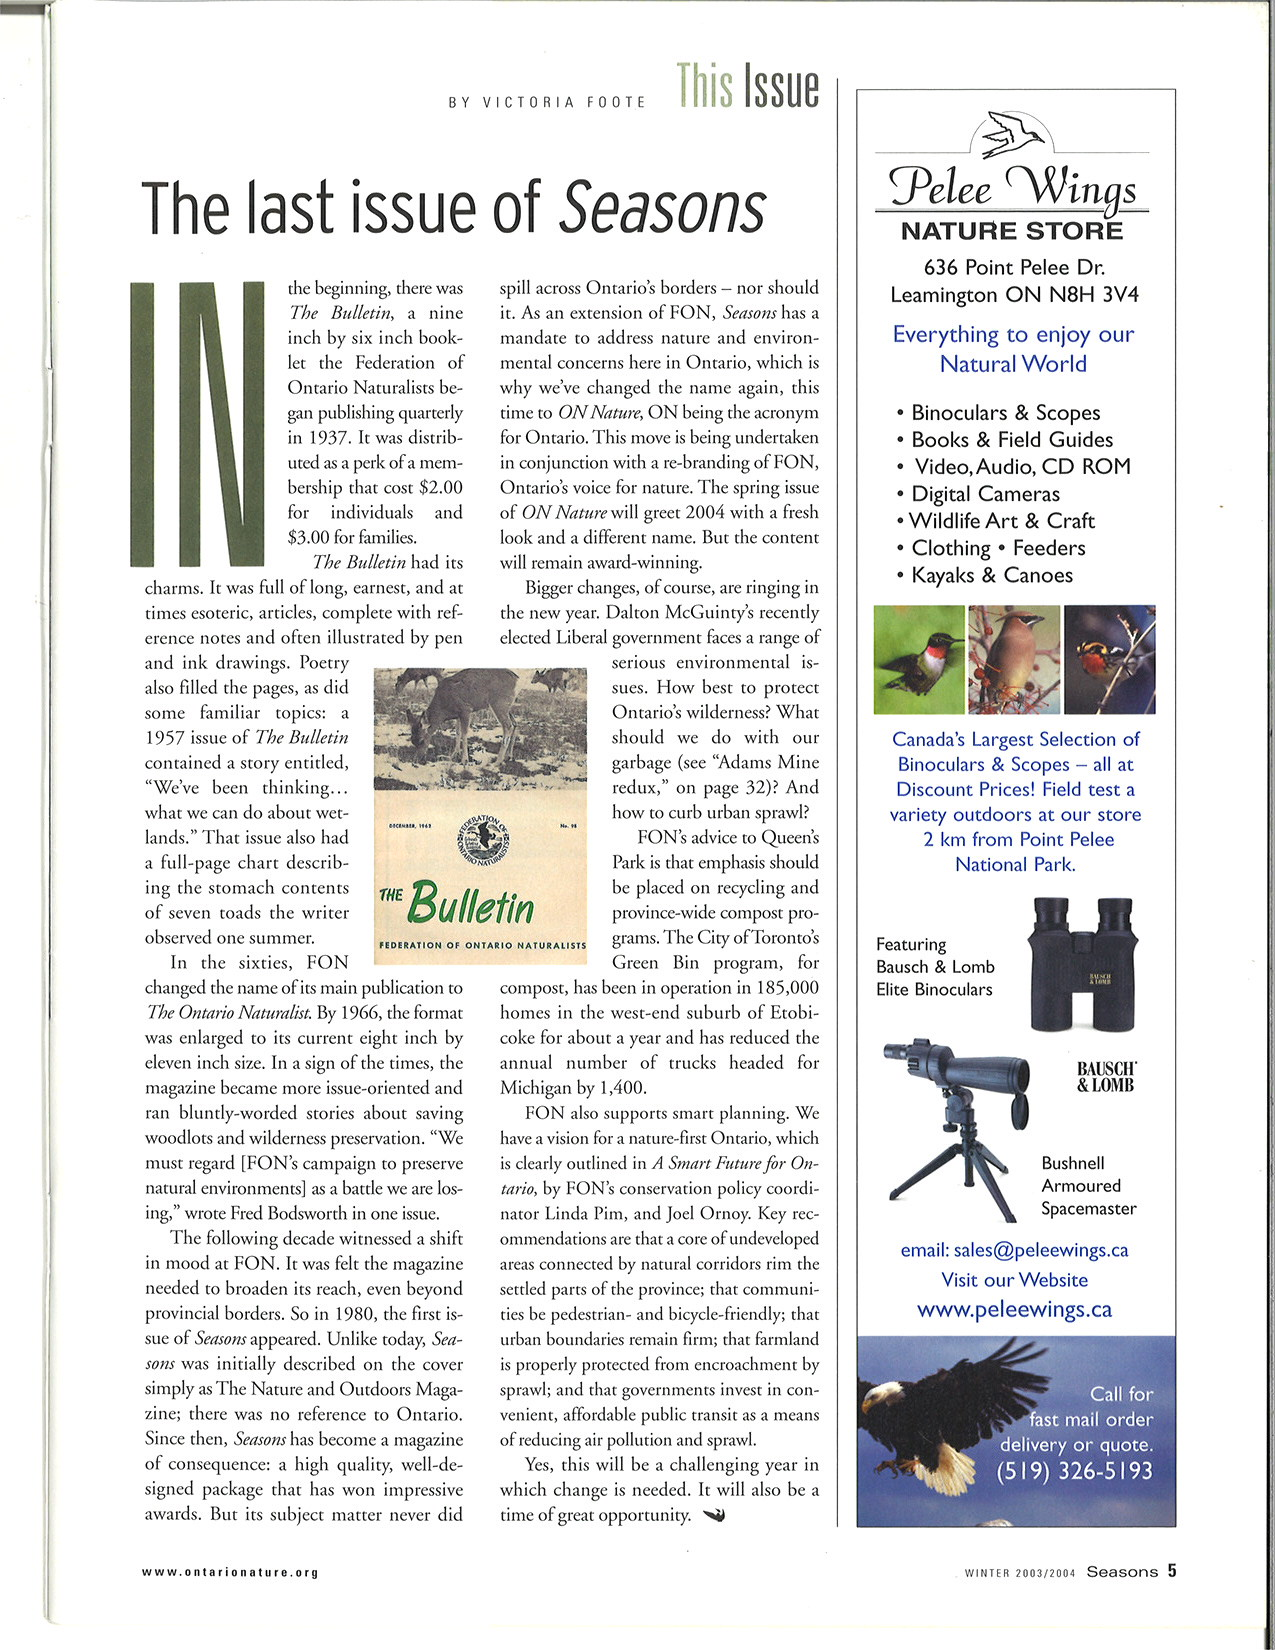 The Last Issue of Seasons